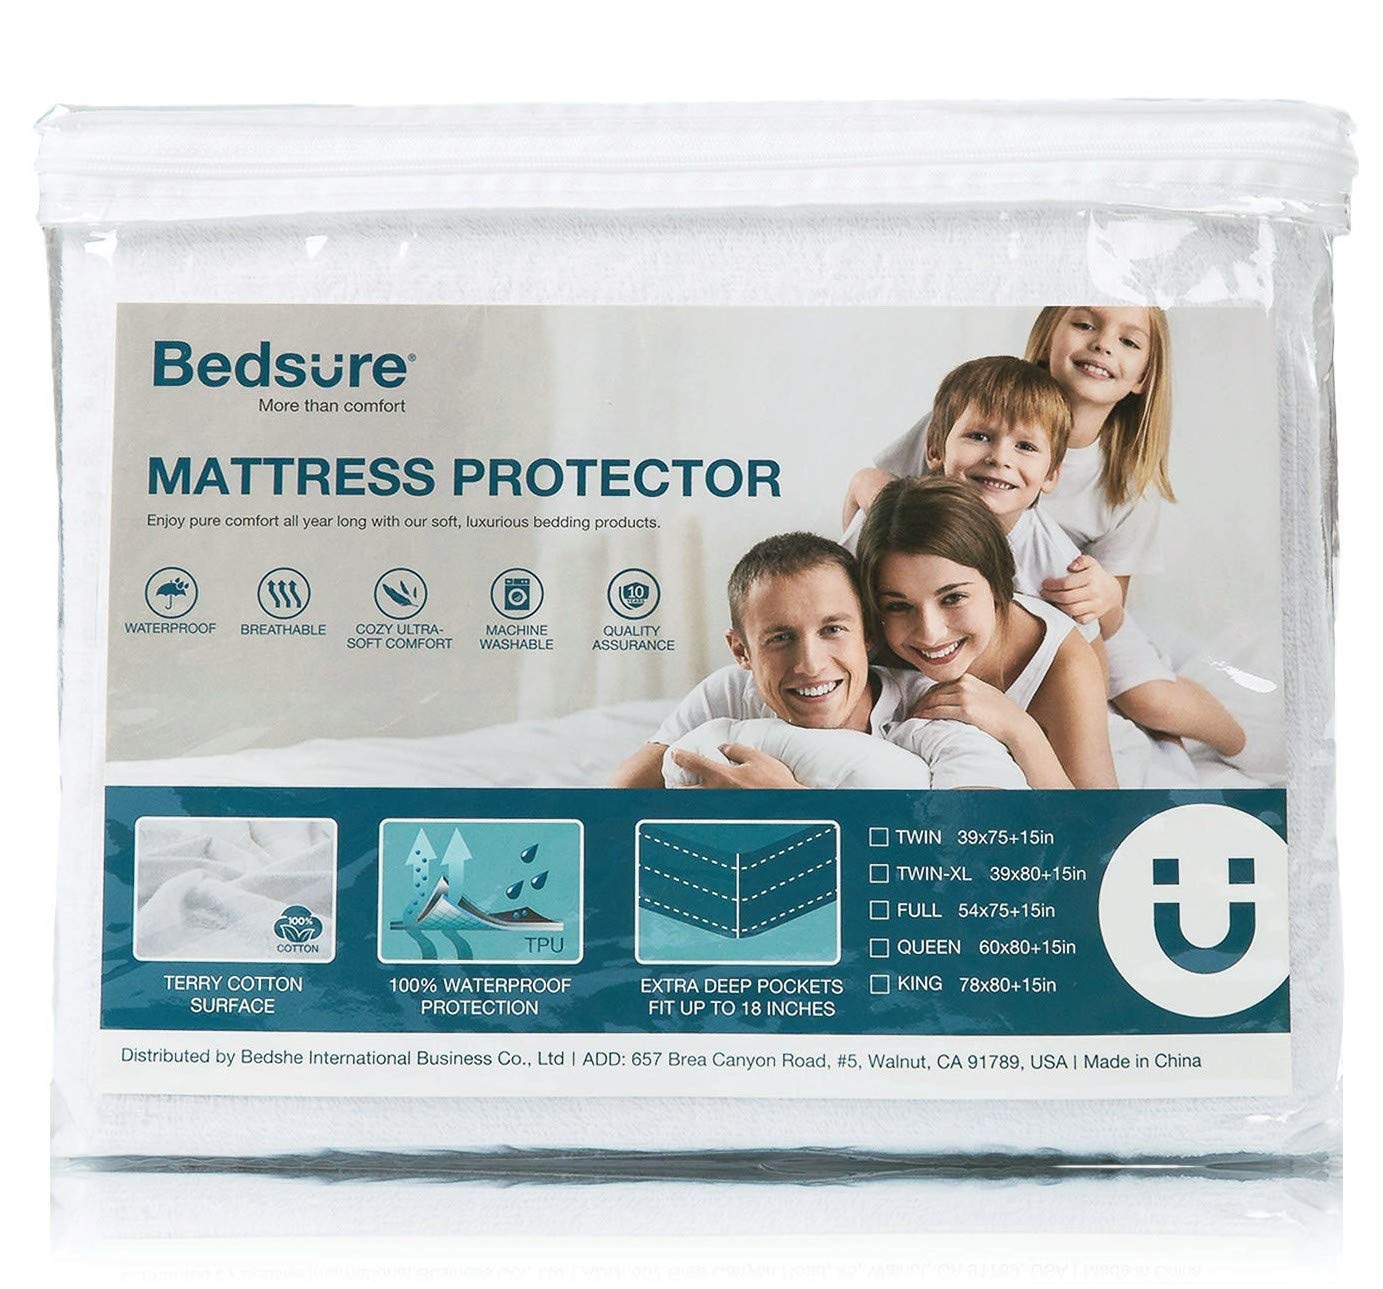 Bedsure 100% Waterproof Mattress Protector Full Size Terry Cotton Deep Pocket Hypoallergenic Mattress Cover-White 54 x 75 inches